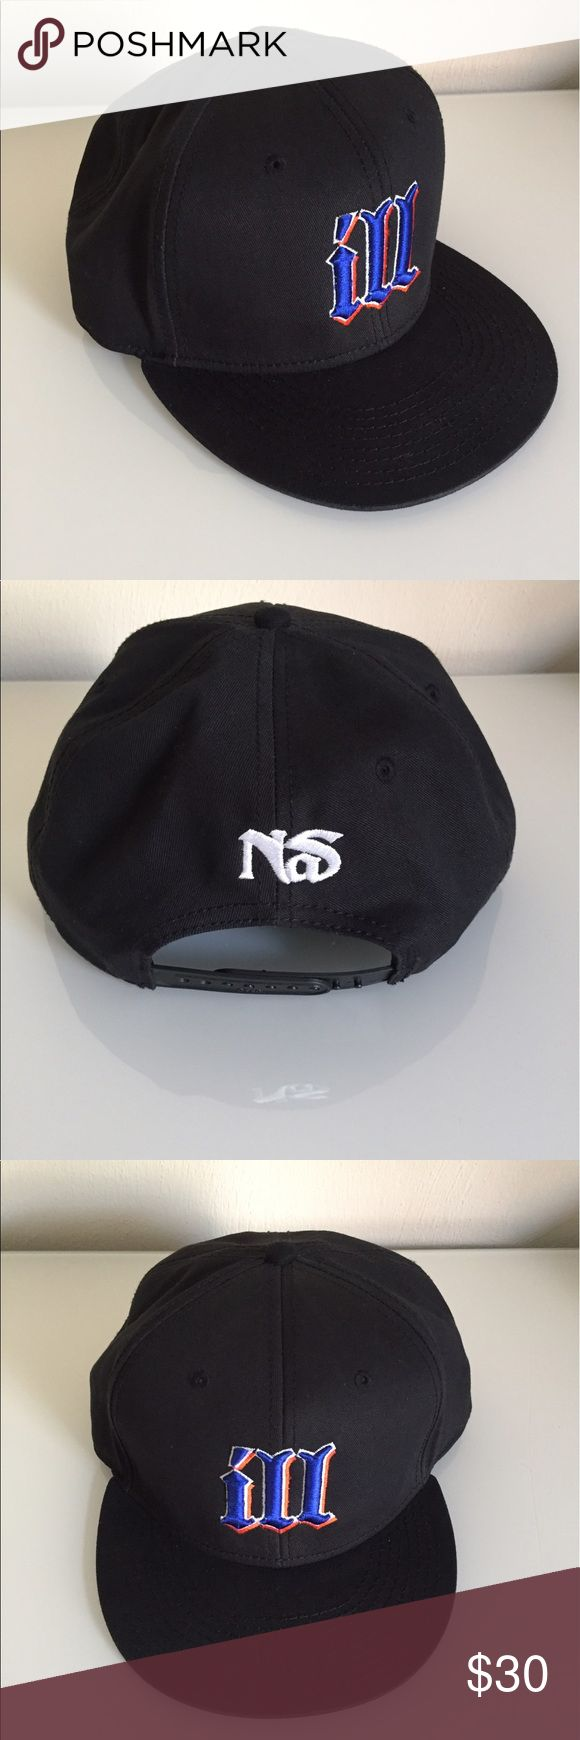 Nas Hat Part of deluxe package from Nas' Life Is Good album release. Great condition. Never worn. One size snapback. Accessories Hats